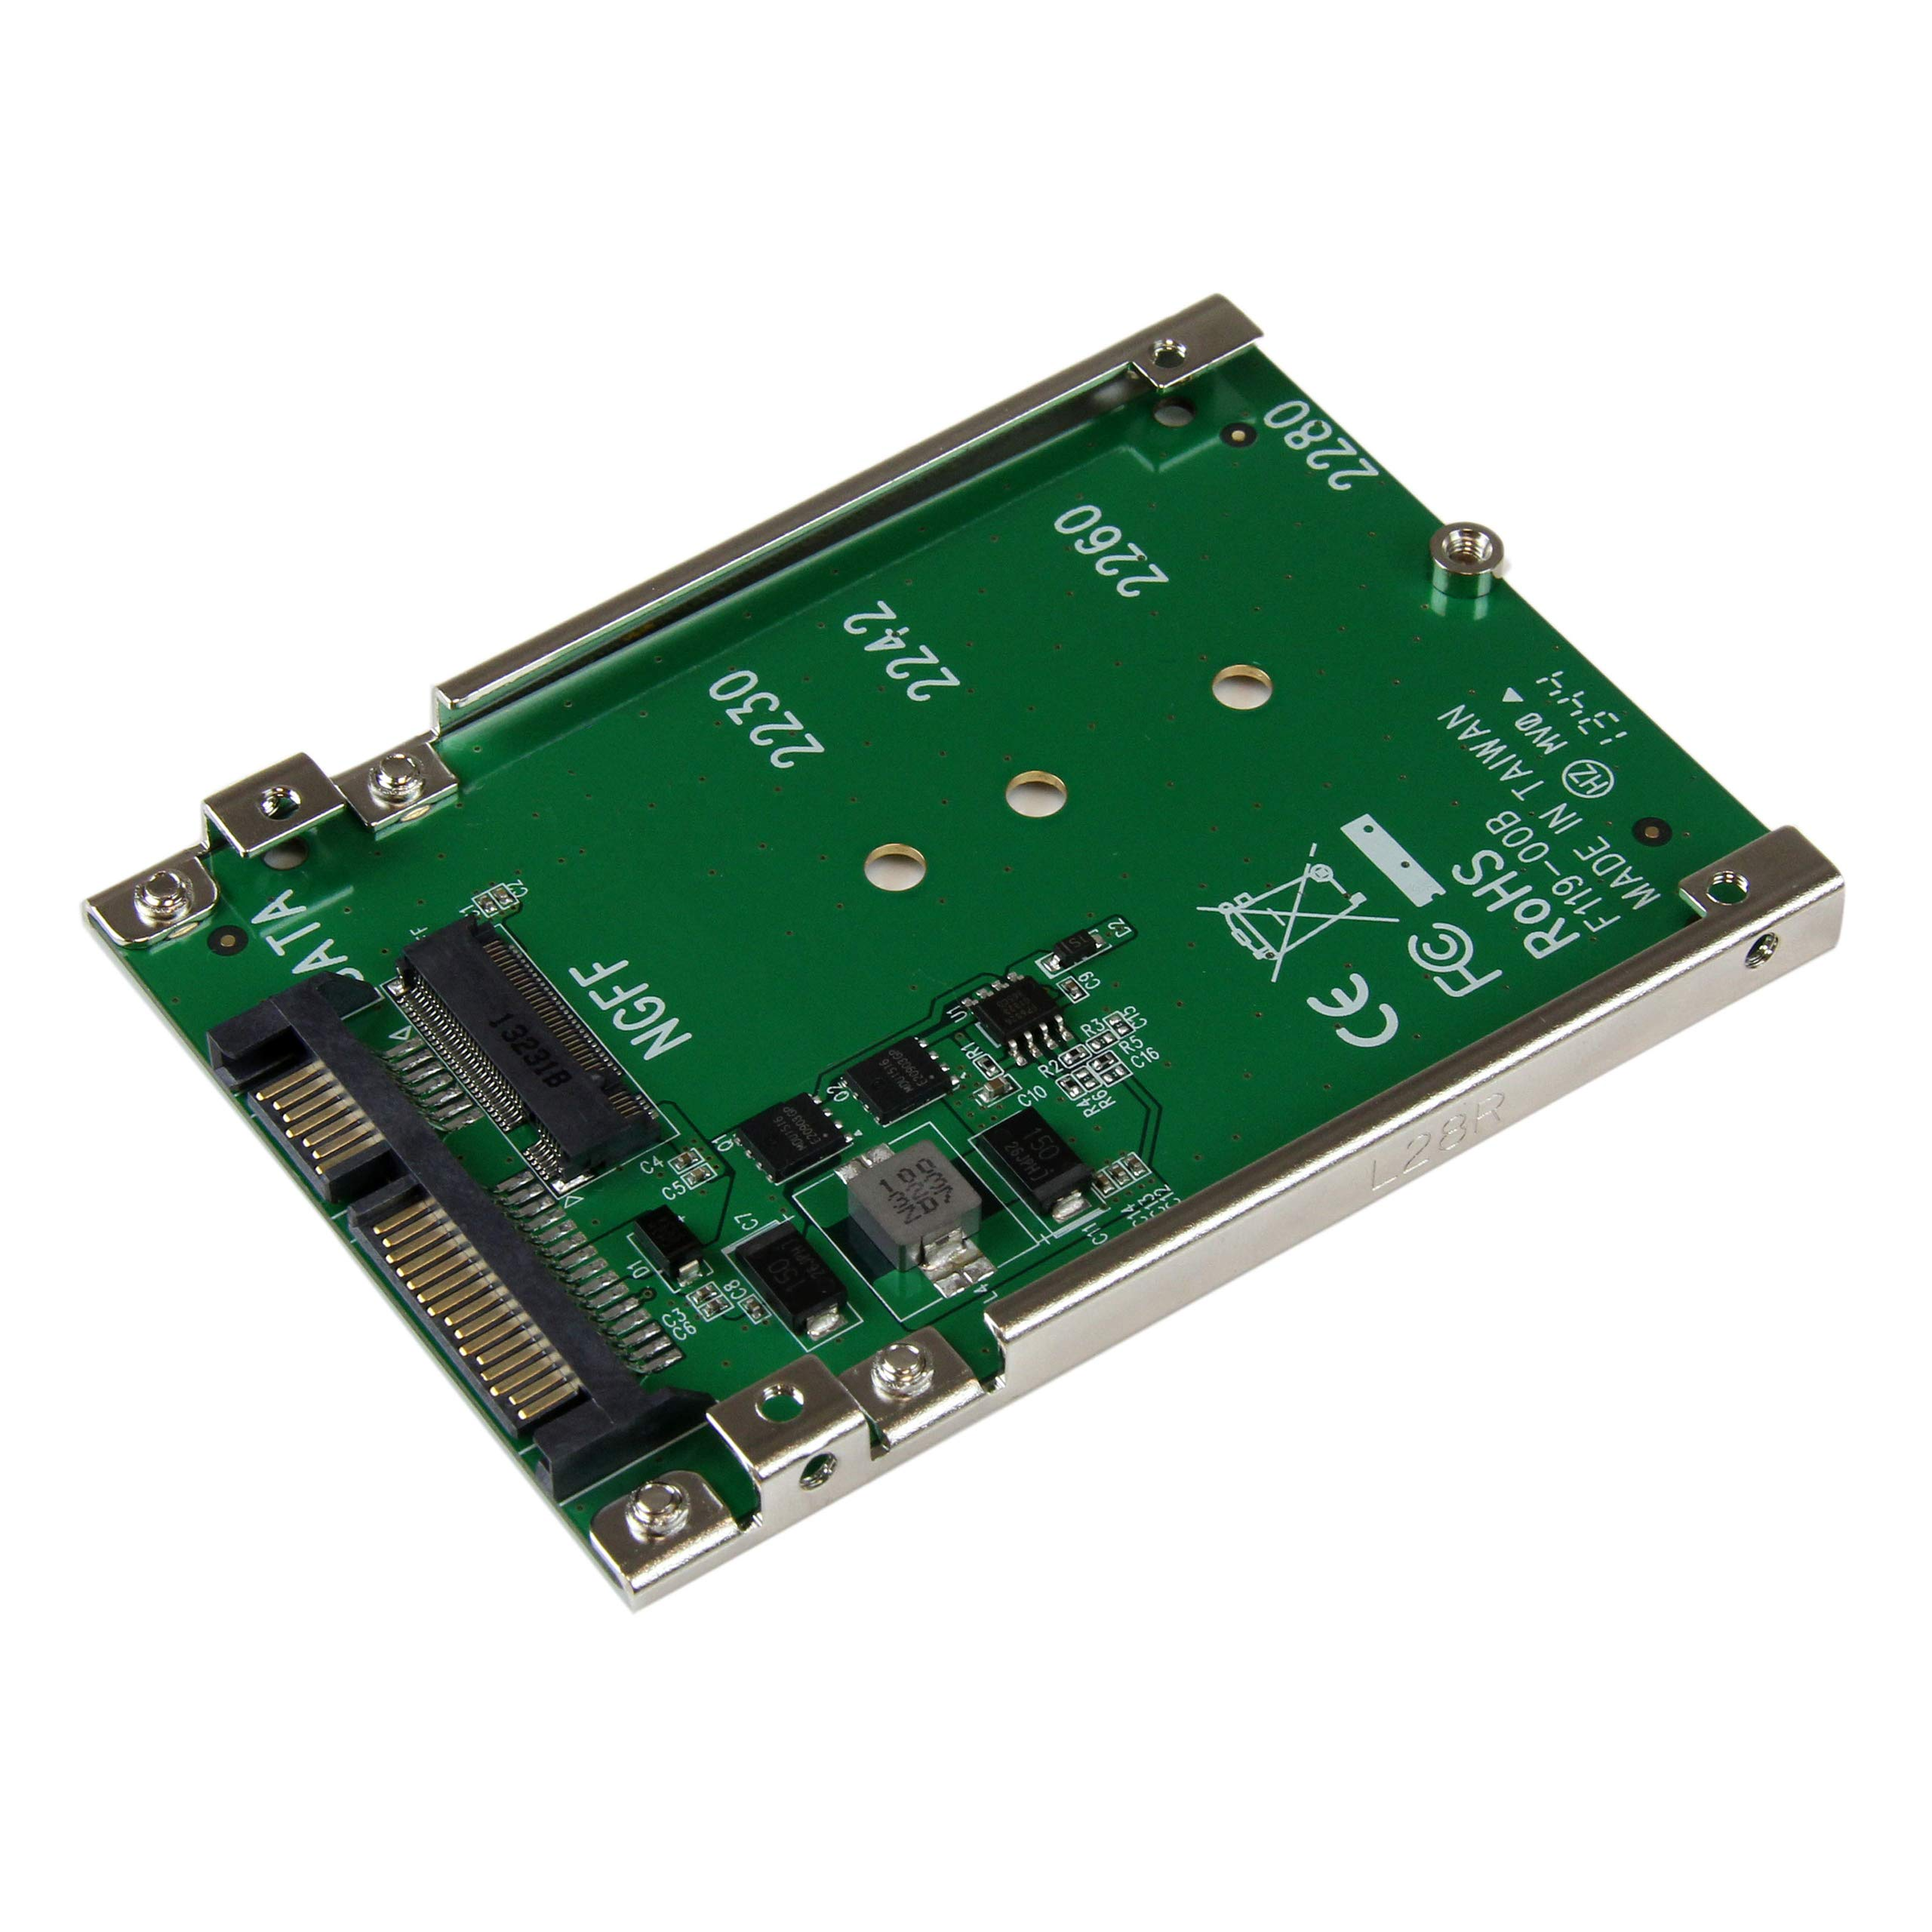 StarTech.com M.2 SSD to 2.5in SATA Adapter - M.2 NGFF to SATA Converter - 7mm - Open-Frame Bracket - M2 Hard Drive Adapter (SAT32M225) by StarTech